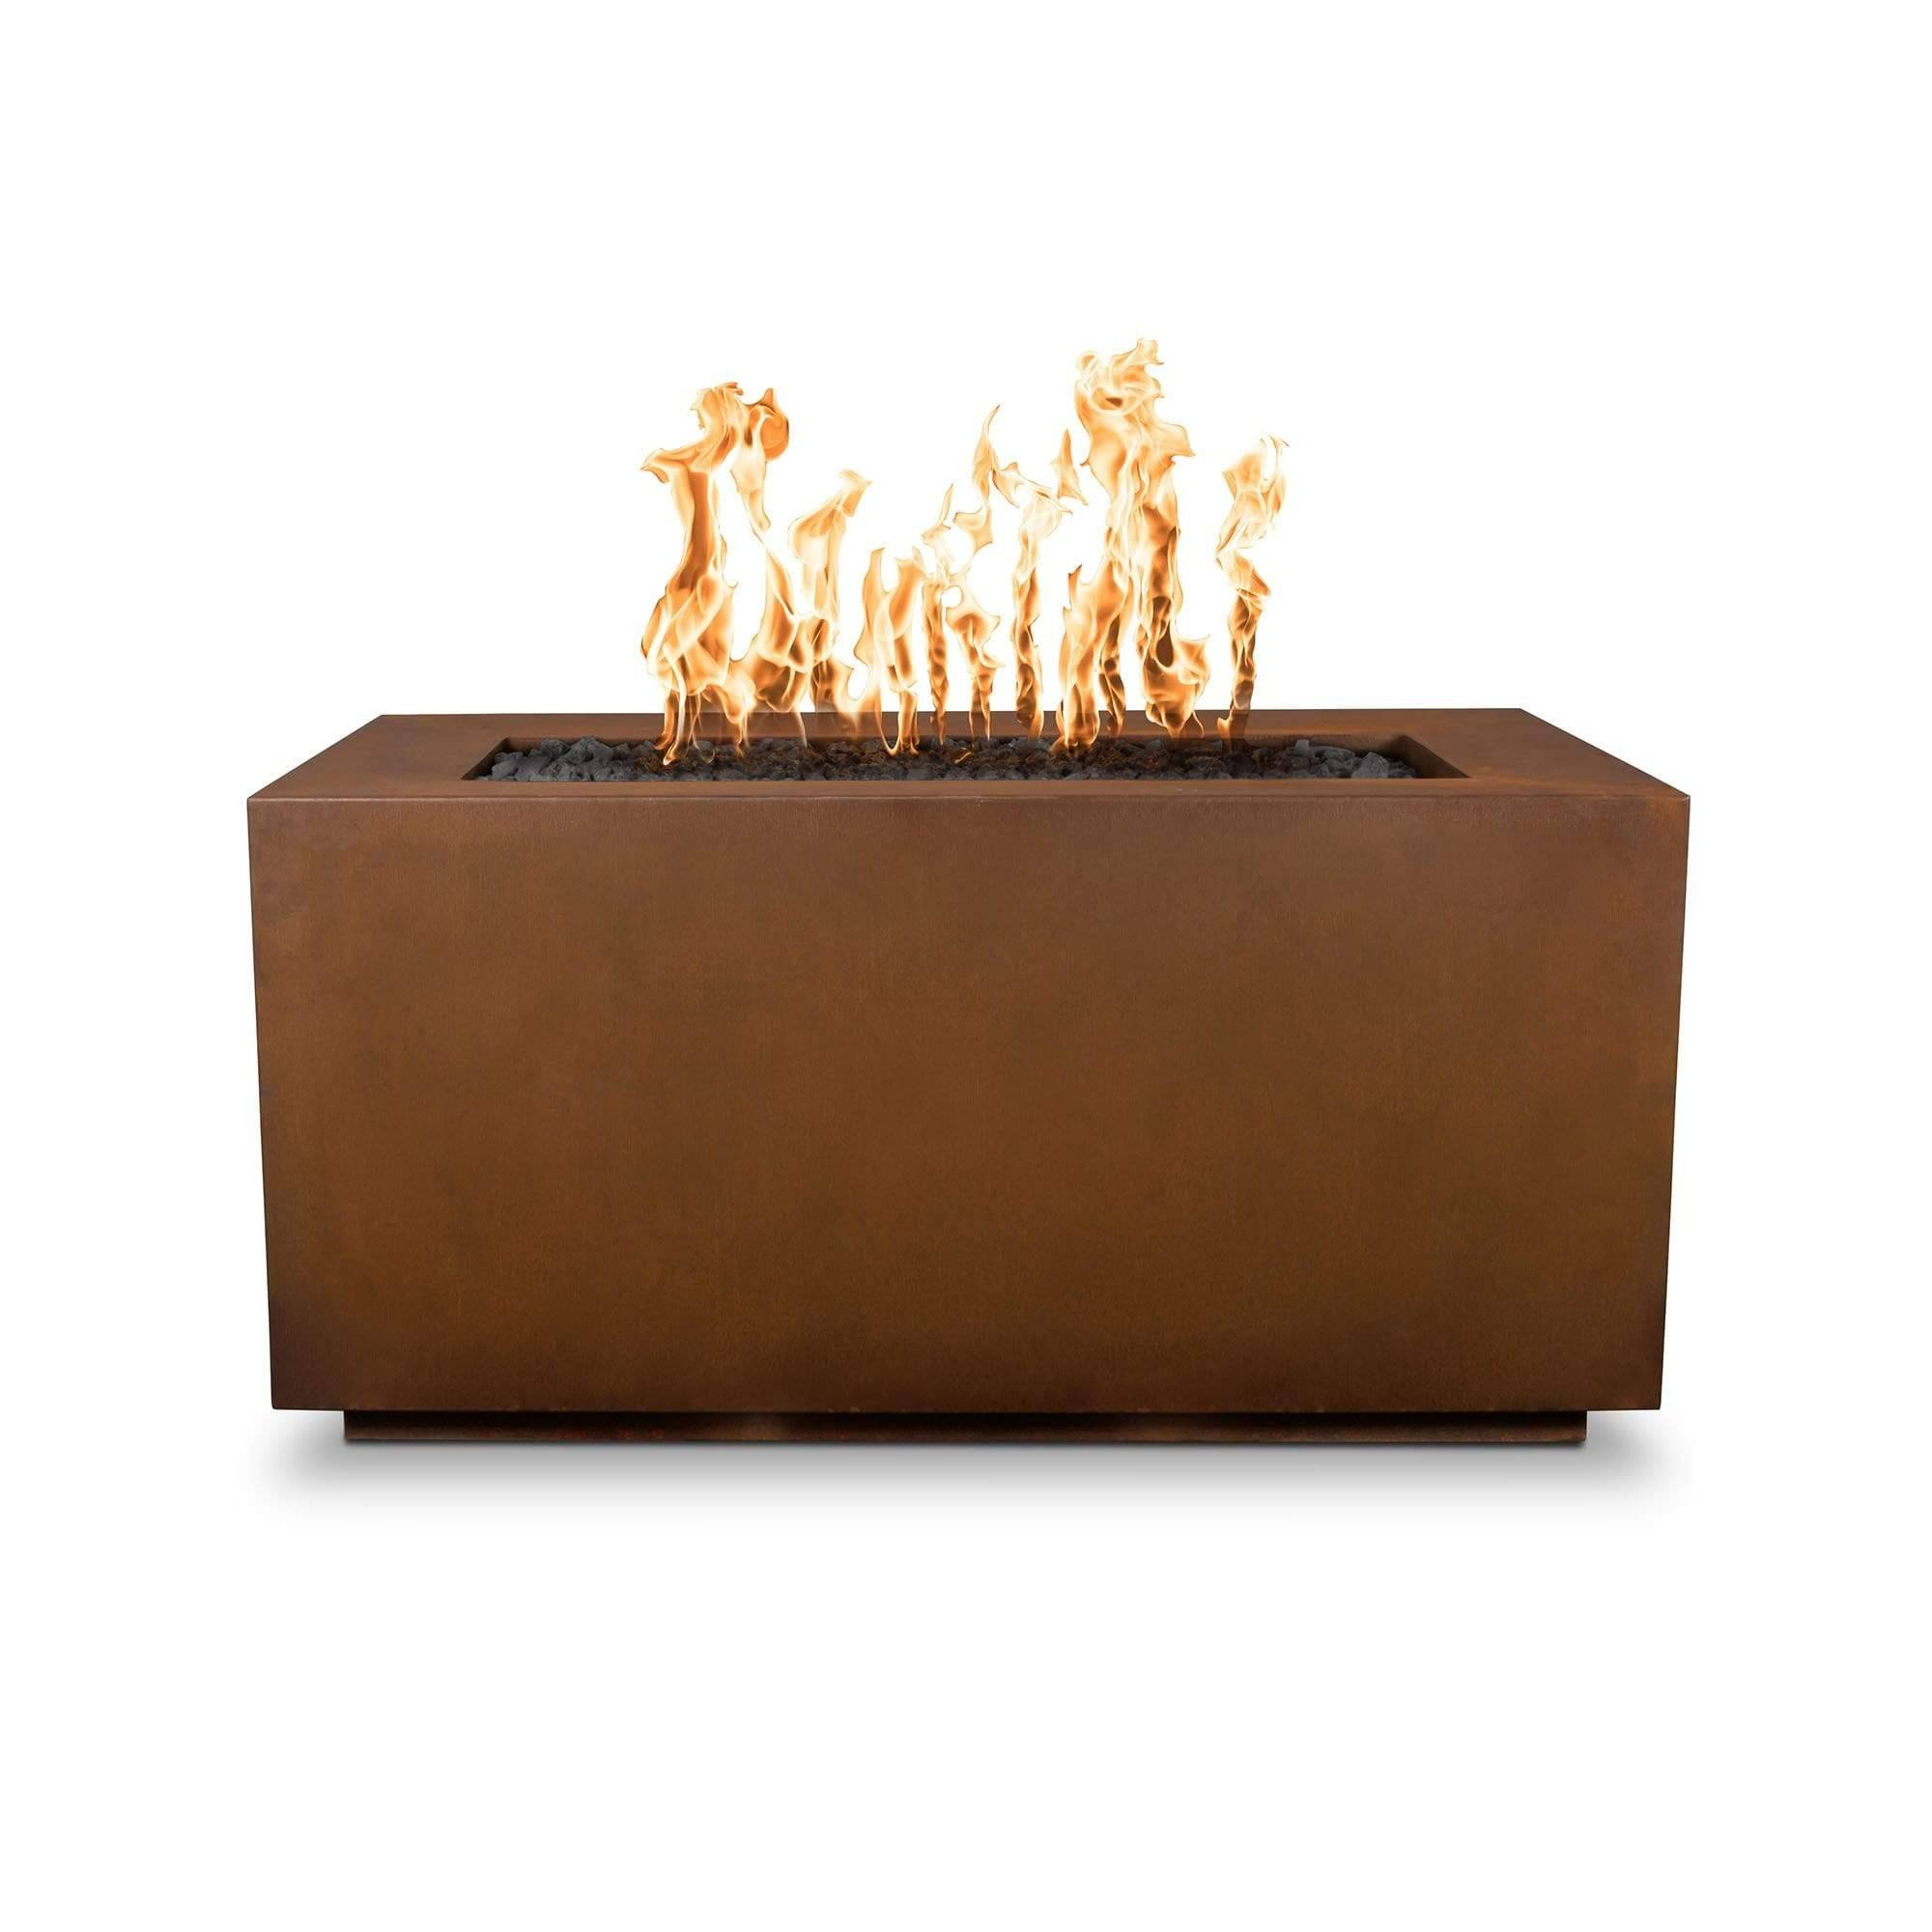 The Outdoor Plus Pismo Metal Fire Pit OPT-R8424 Fire Pit The Outdoor Plus Corten Steel Electronic Ignition Natural Gas